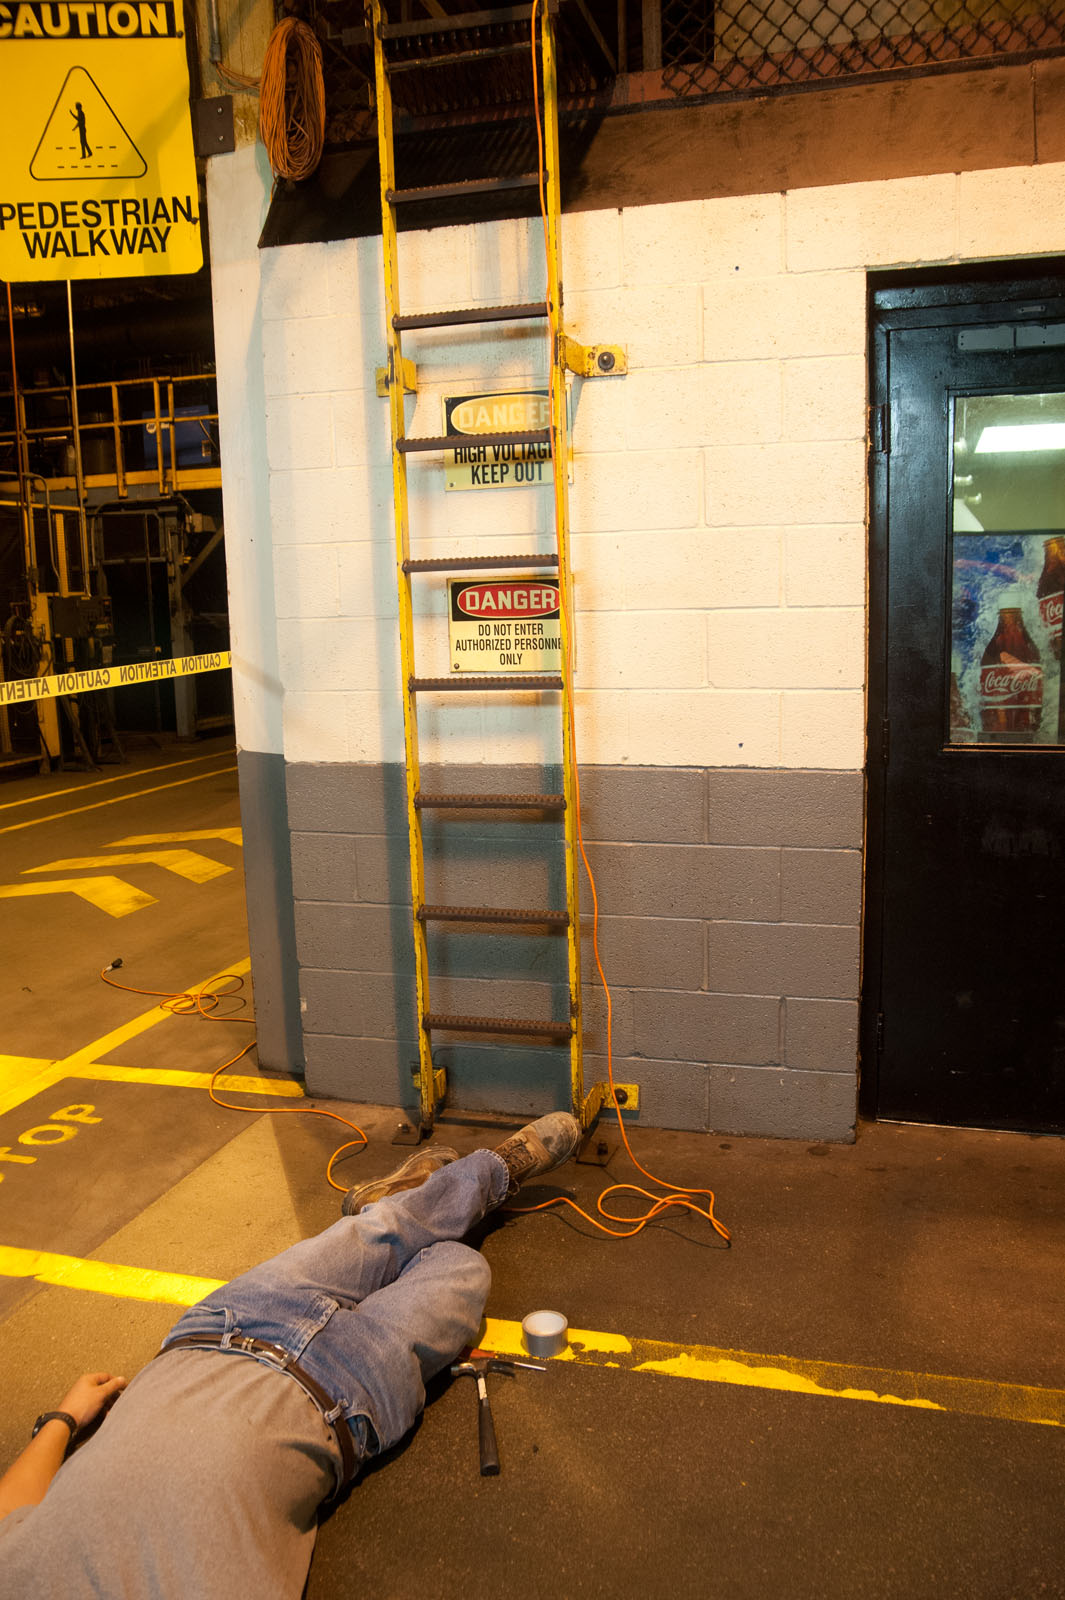 Accident Incidence Investigation. Man fell off a ladder at work.